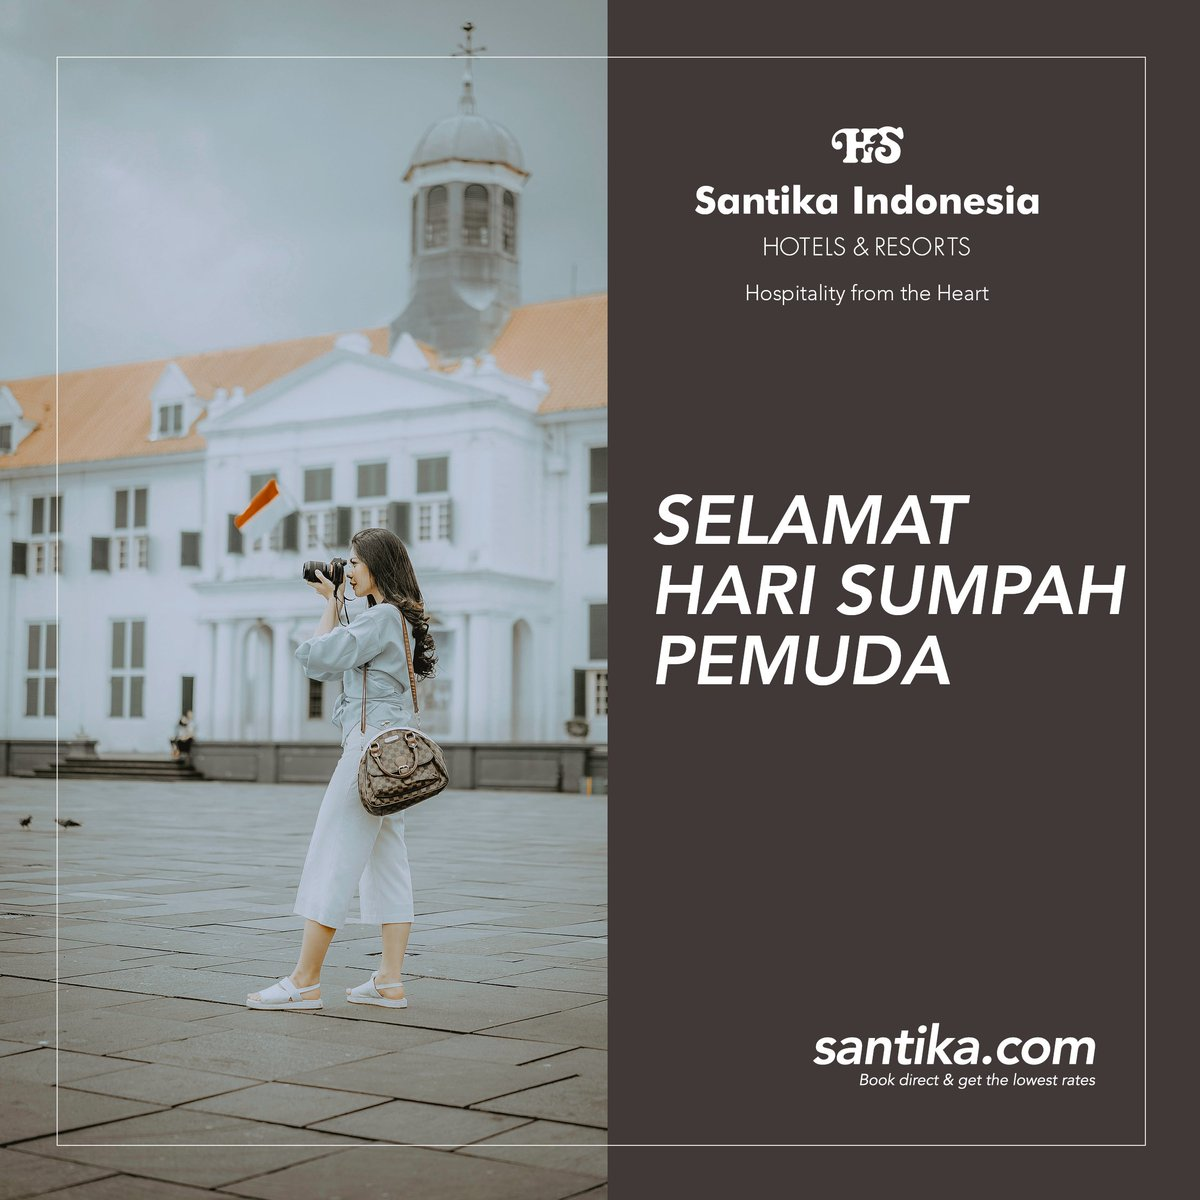 Santika Indonesia Santikahotels Twitter River Wedding Ring Cincin Kawin Tunangan Pernikahan Berlian Emas 0 Replies Retweets Likes